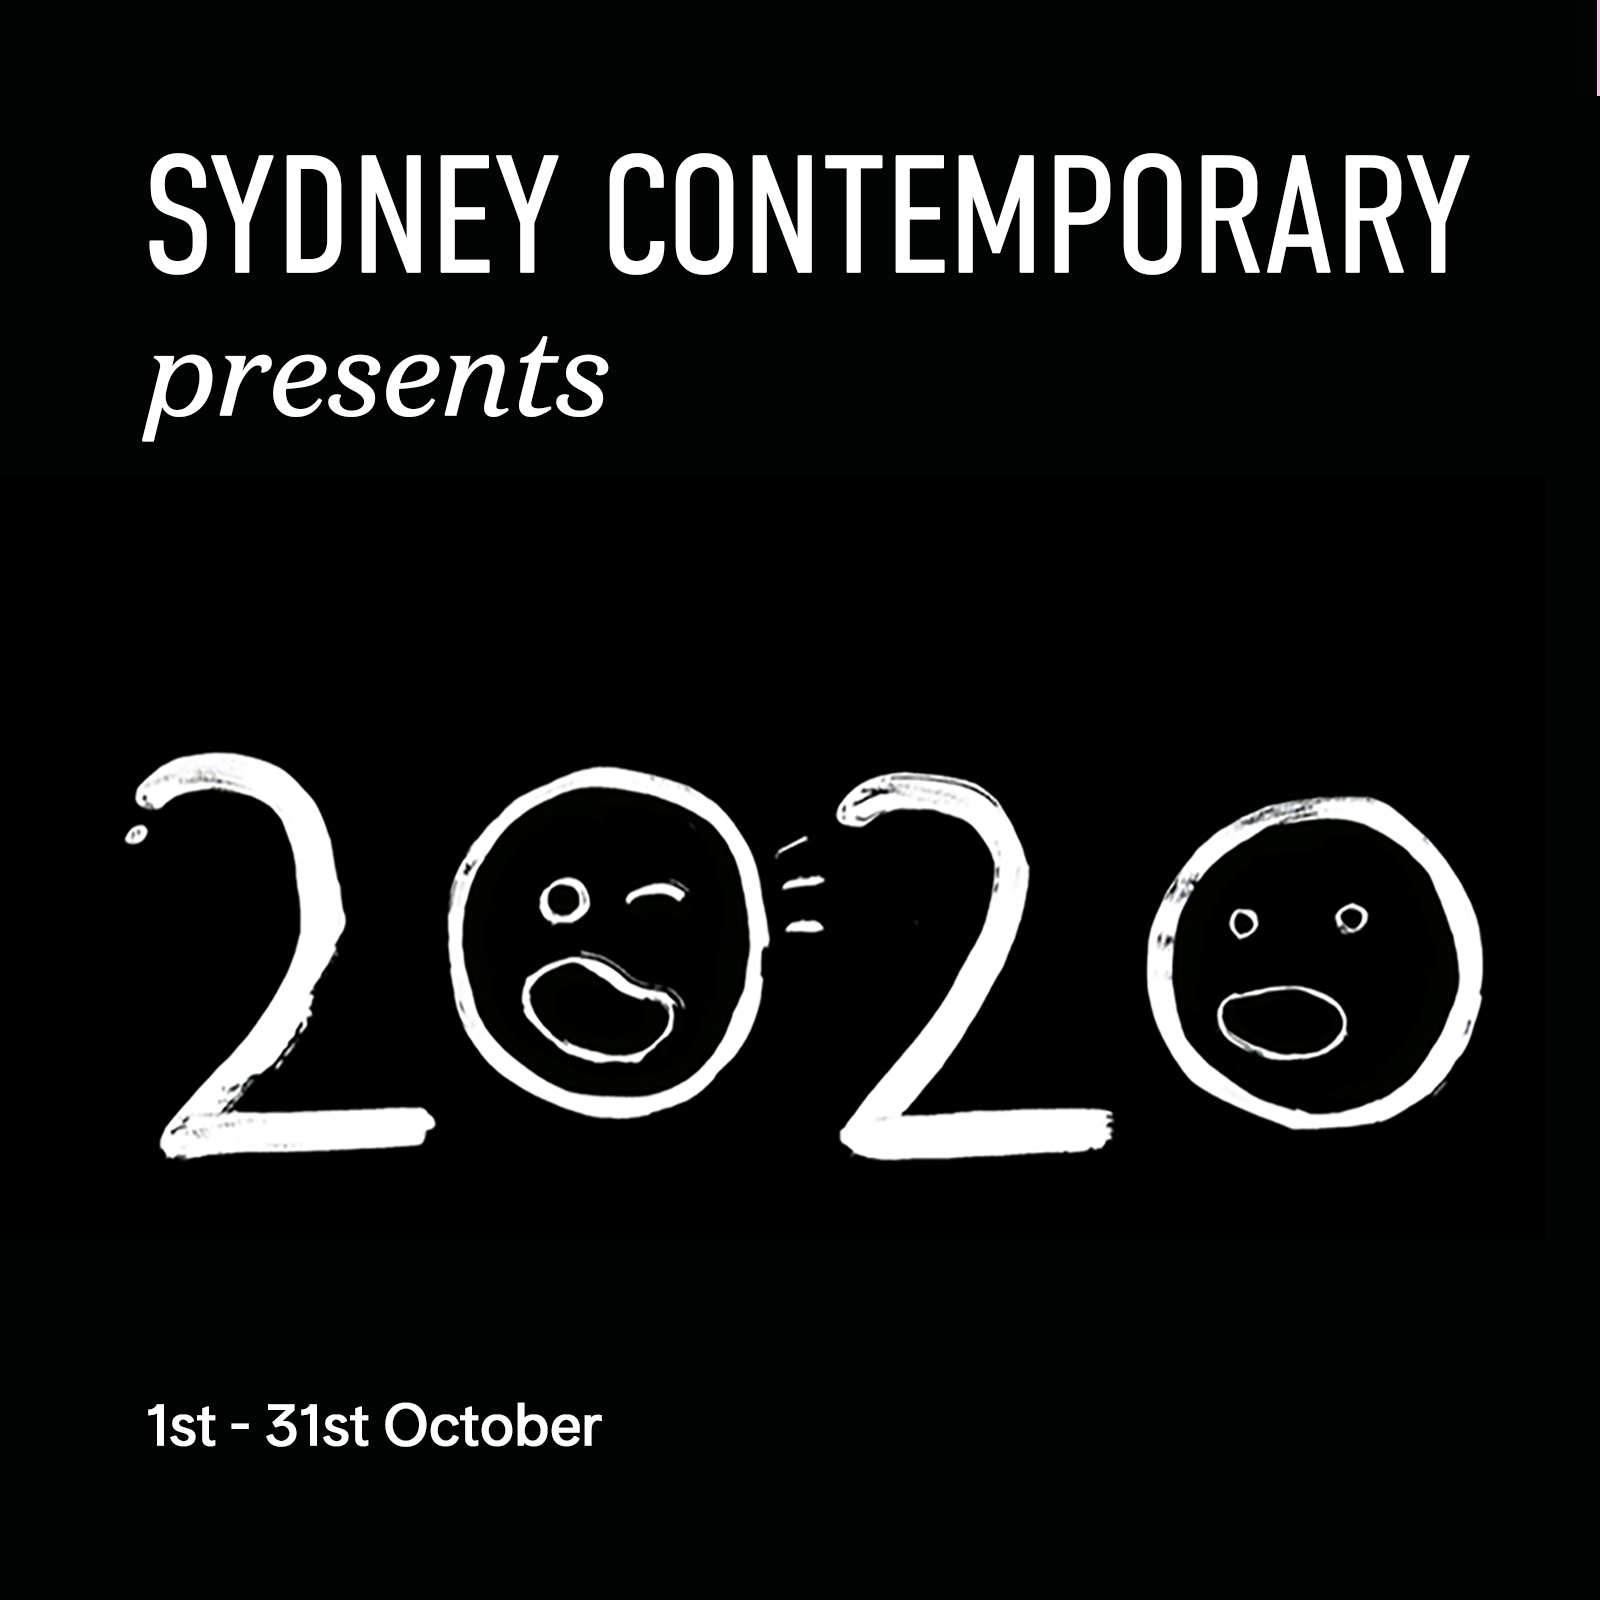 Sydney Contemporary presents 2020